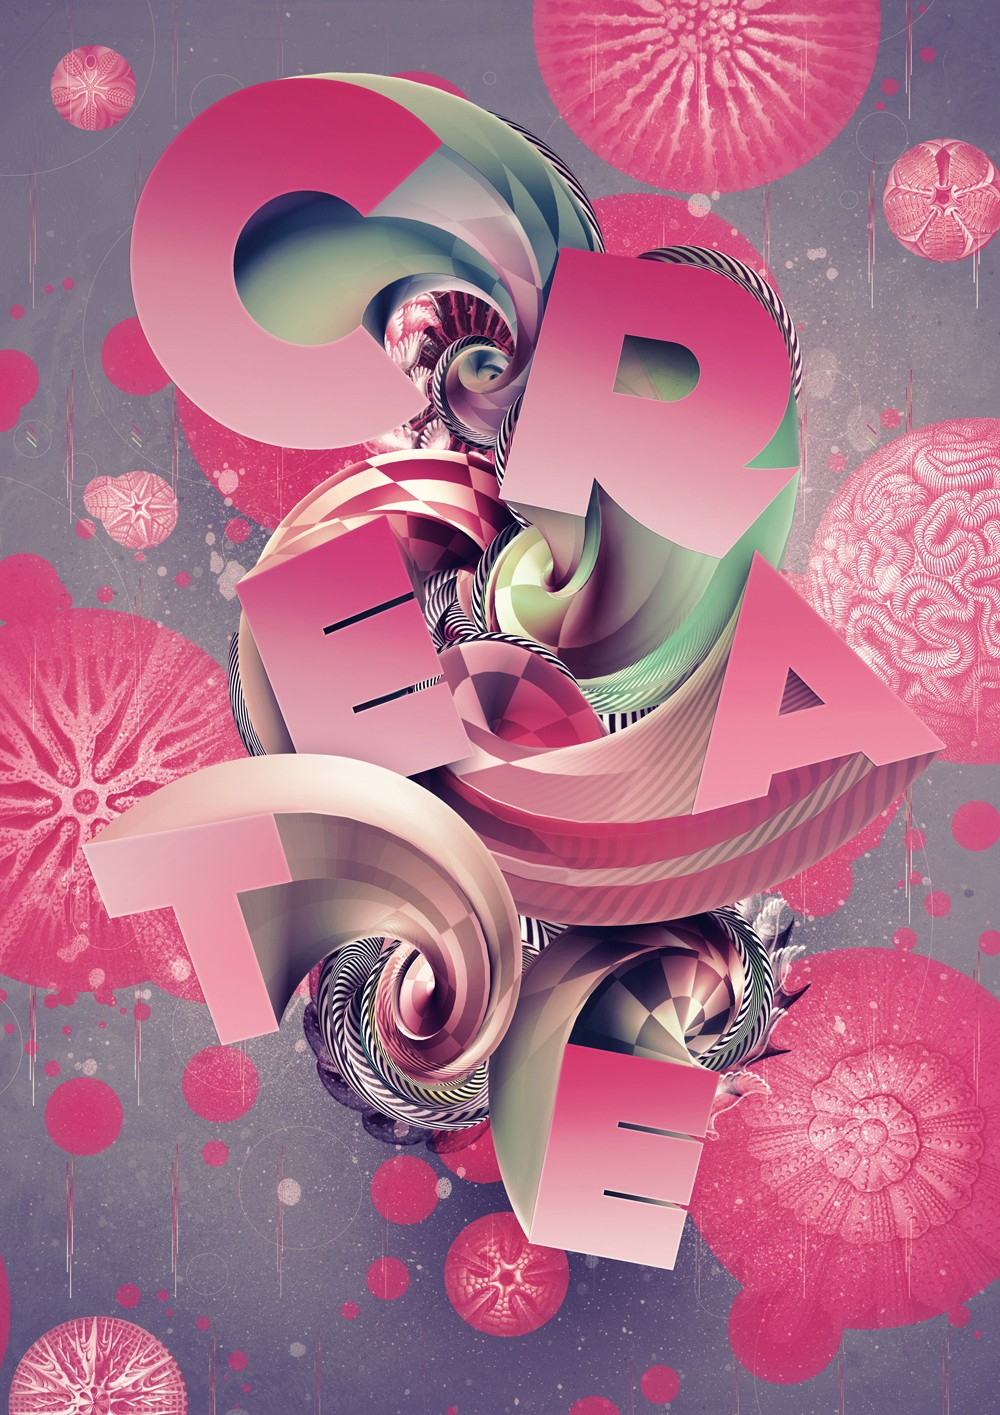 photoshop 3d type create text using tutorials cs5 effects designs tutorial digital graphic typography poster effect creative collection creating arts